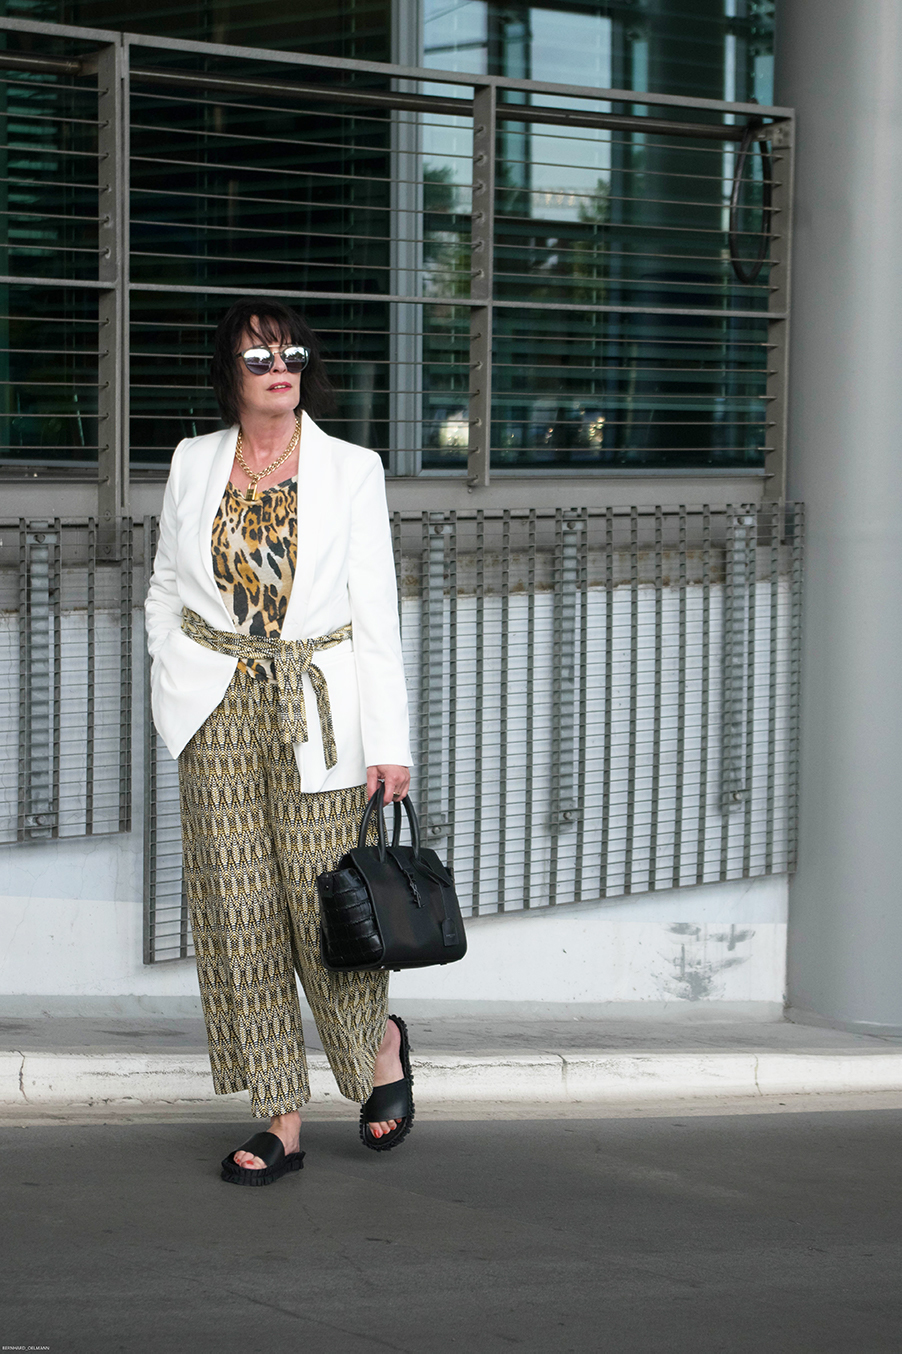 Just-take-a-look Berlin - Outfit - Urlaubsplanung21